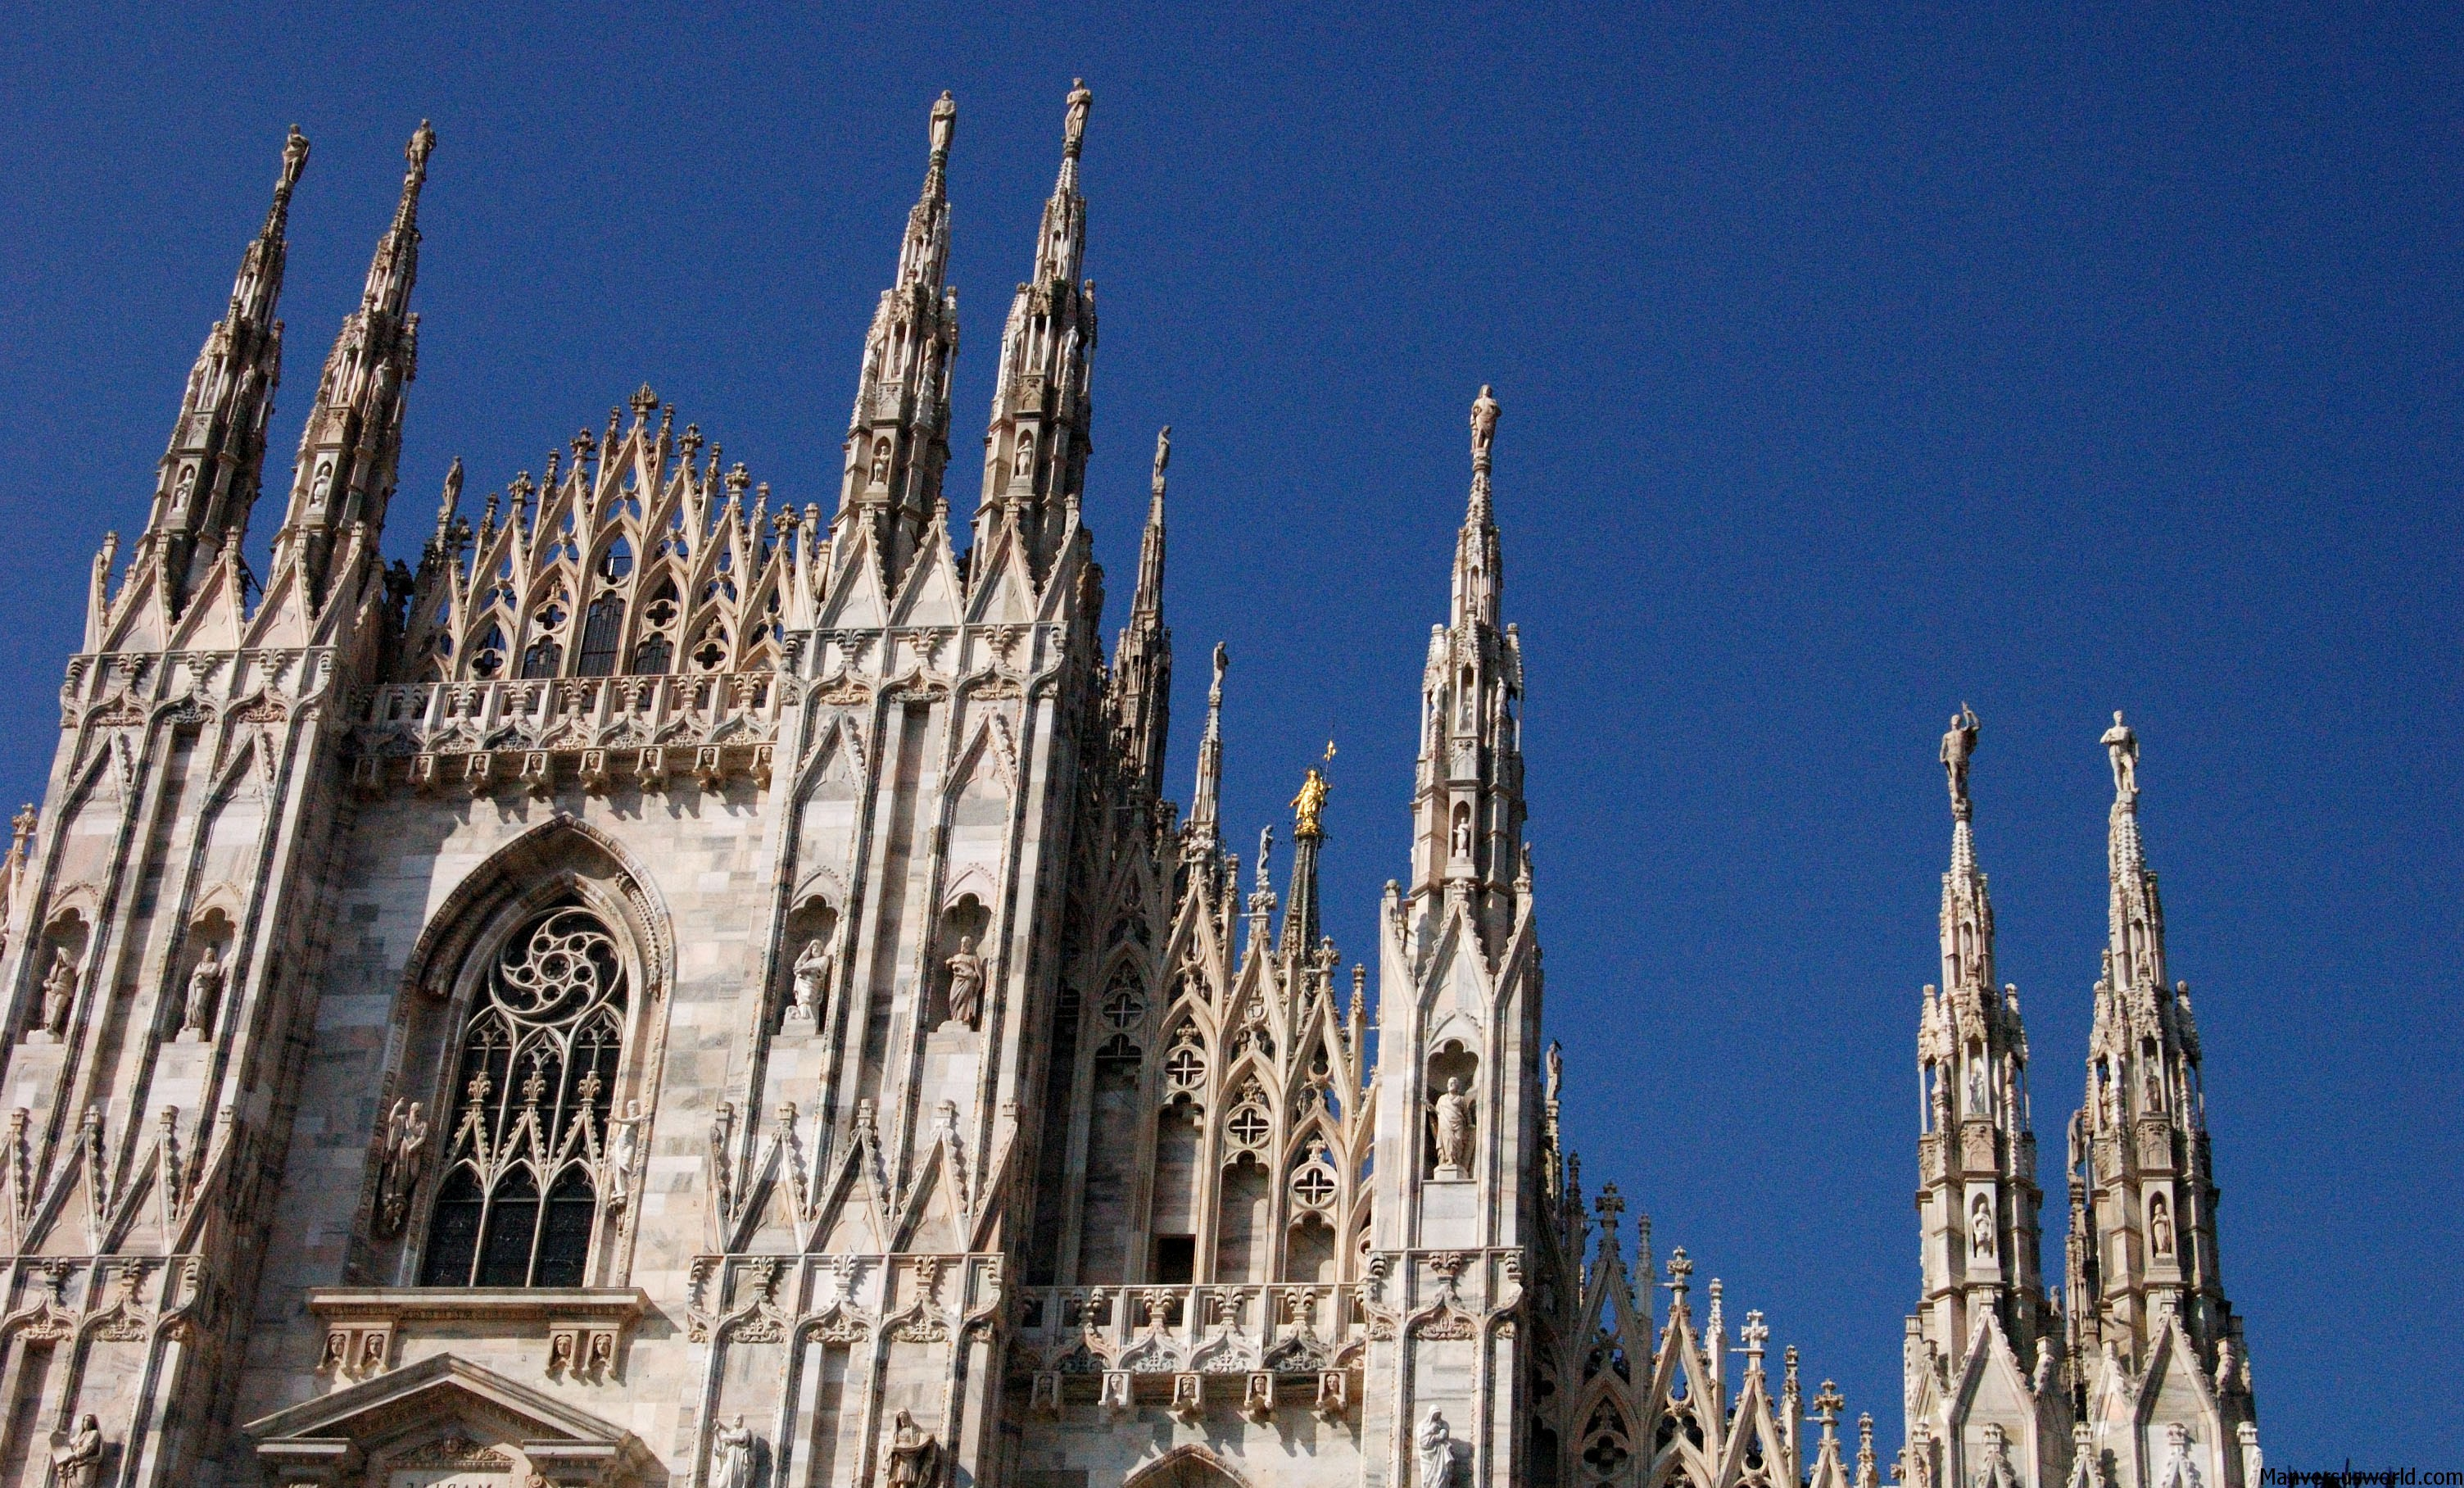 Milan's famous Duomo stands proud